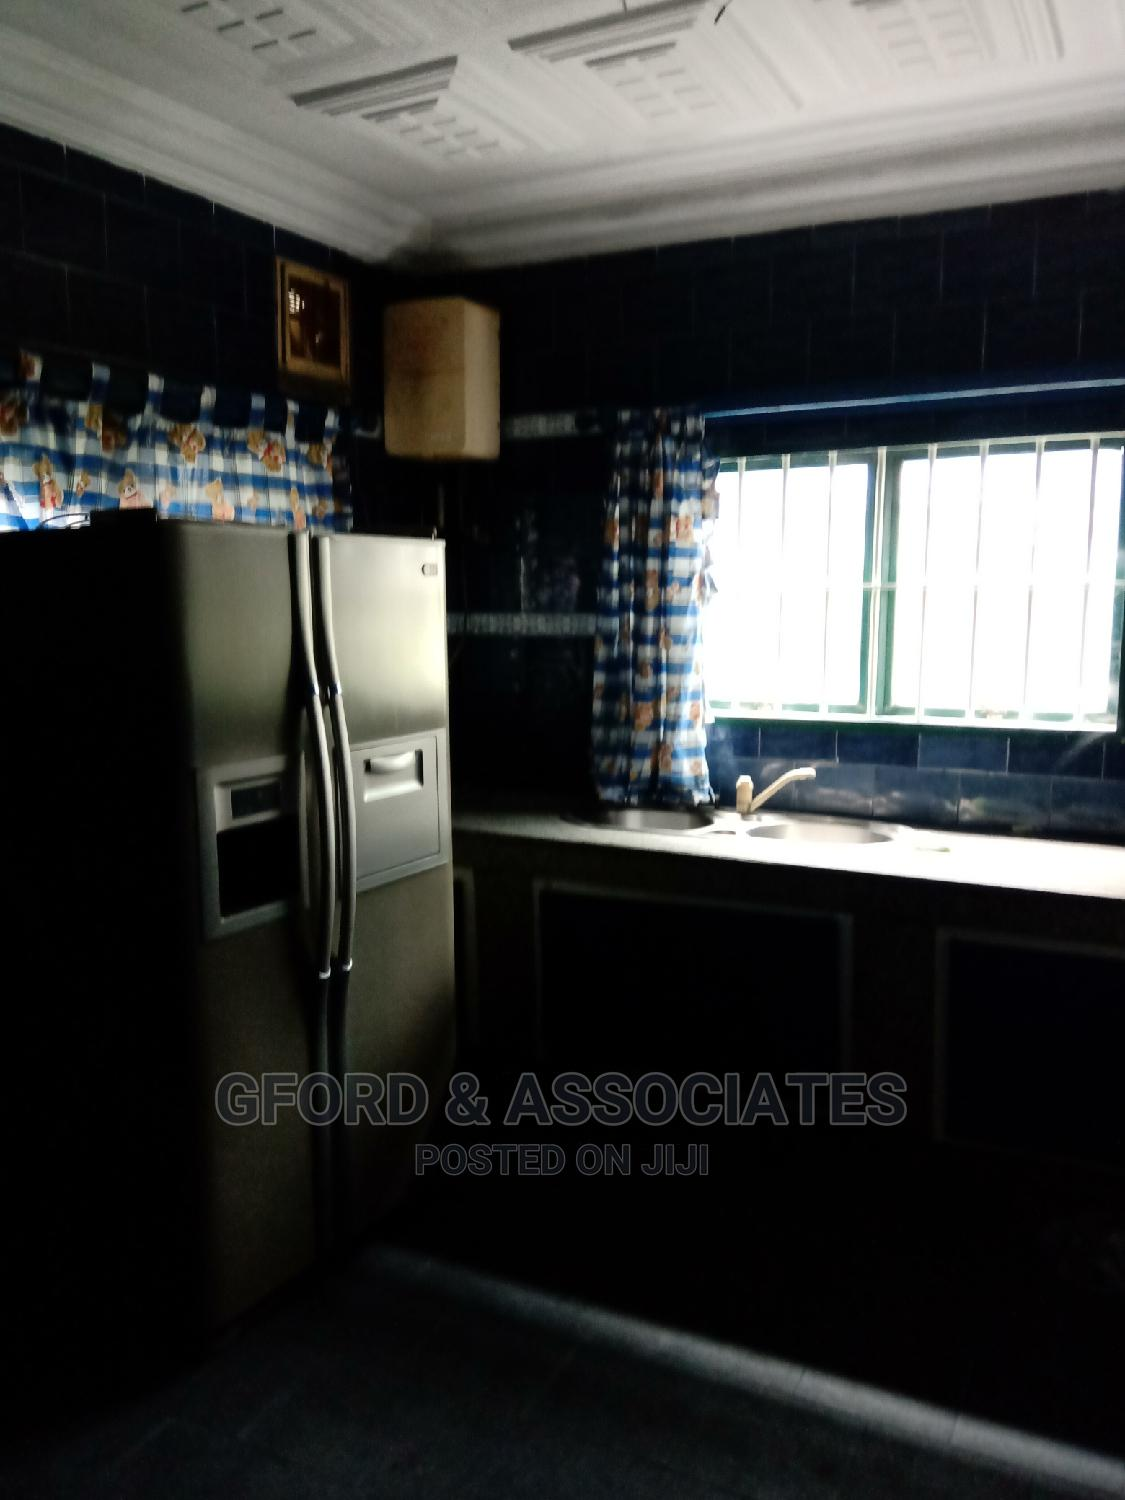 6 Bedrooms Duplex in GRA, Port-Harcourt for Sale | Houses & Apartments For Sale for sale in Port-Harcourt, Rivers State, Nigeria